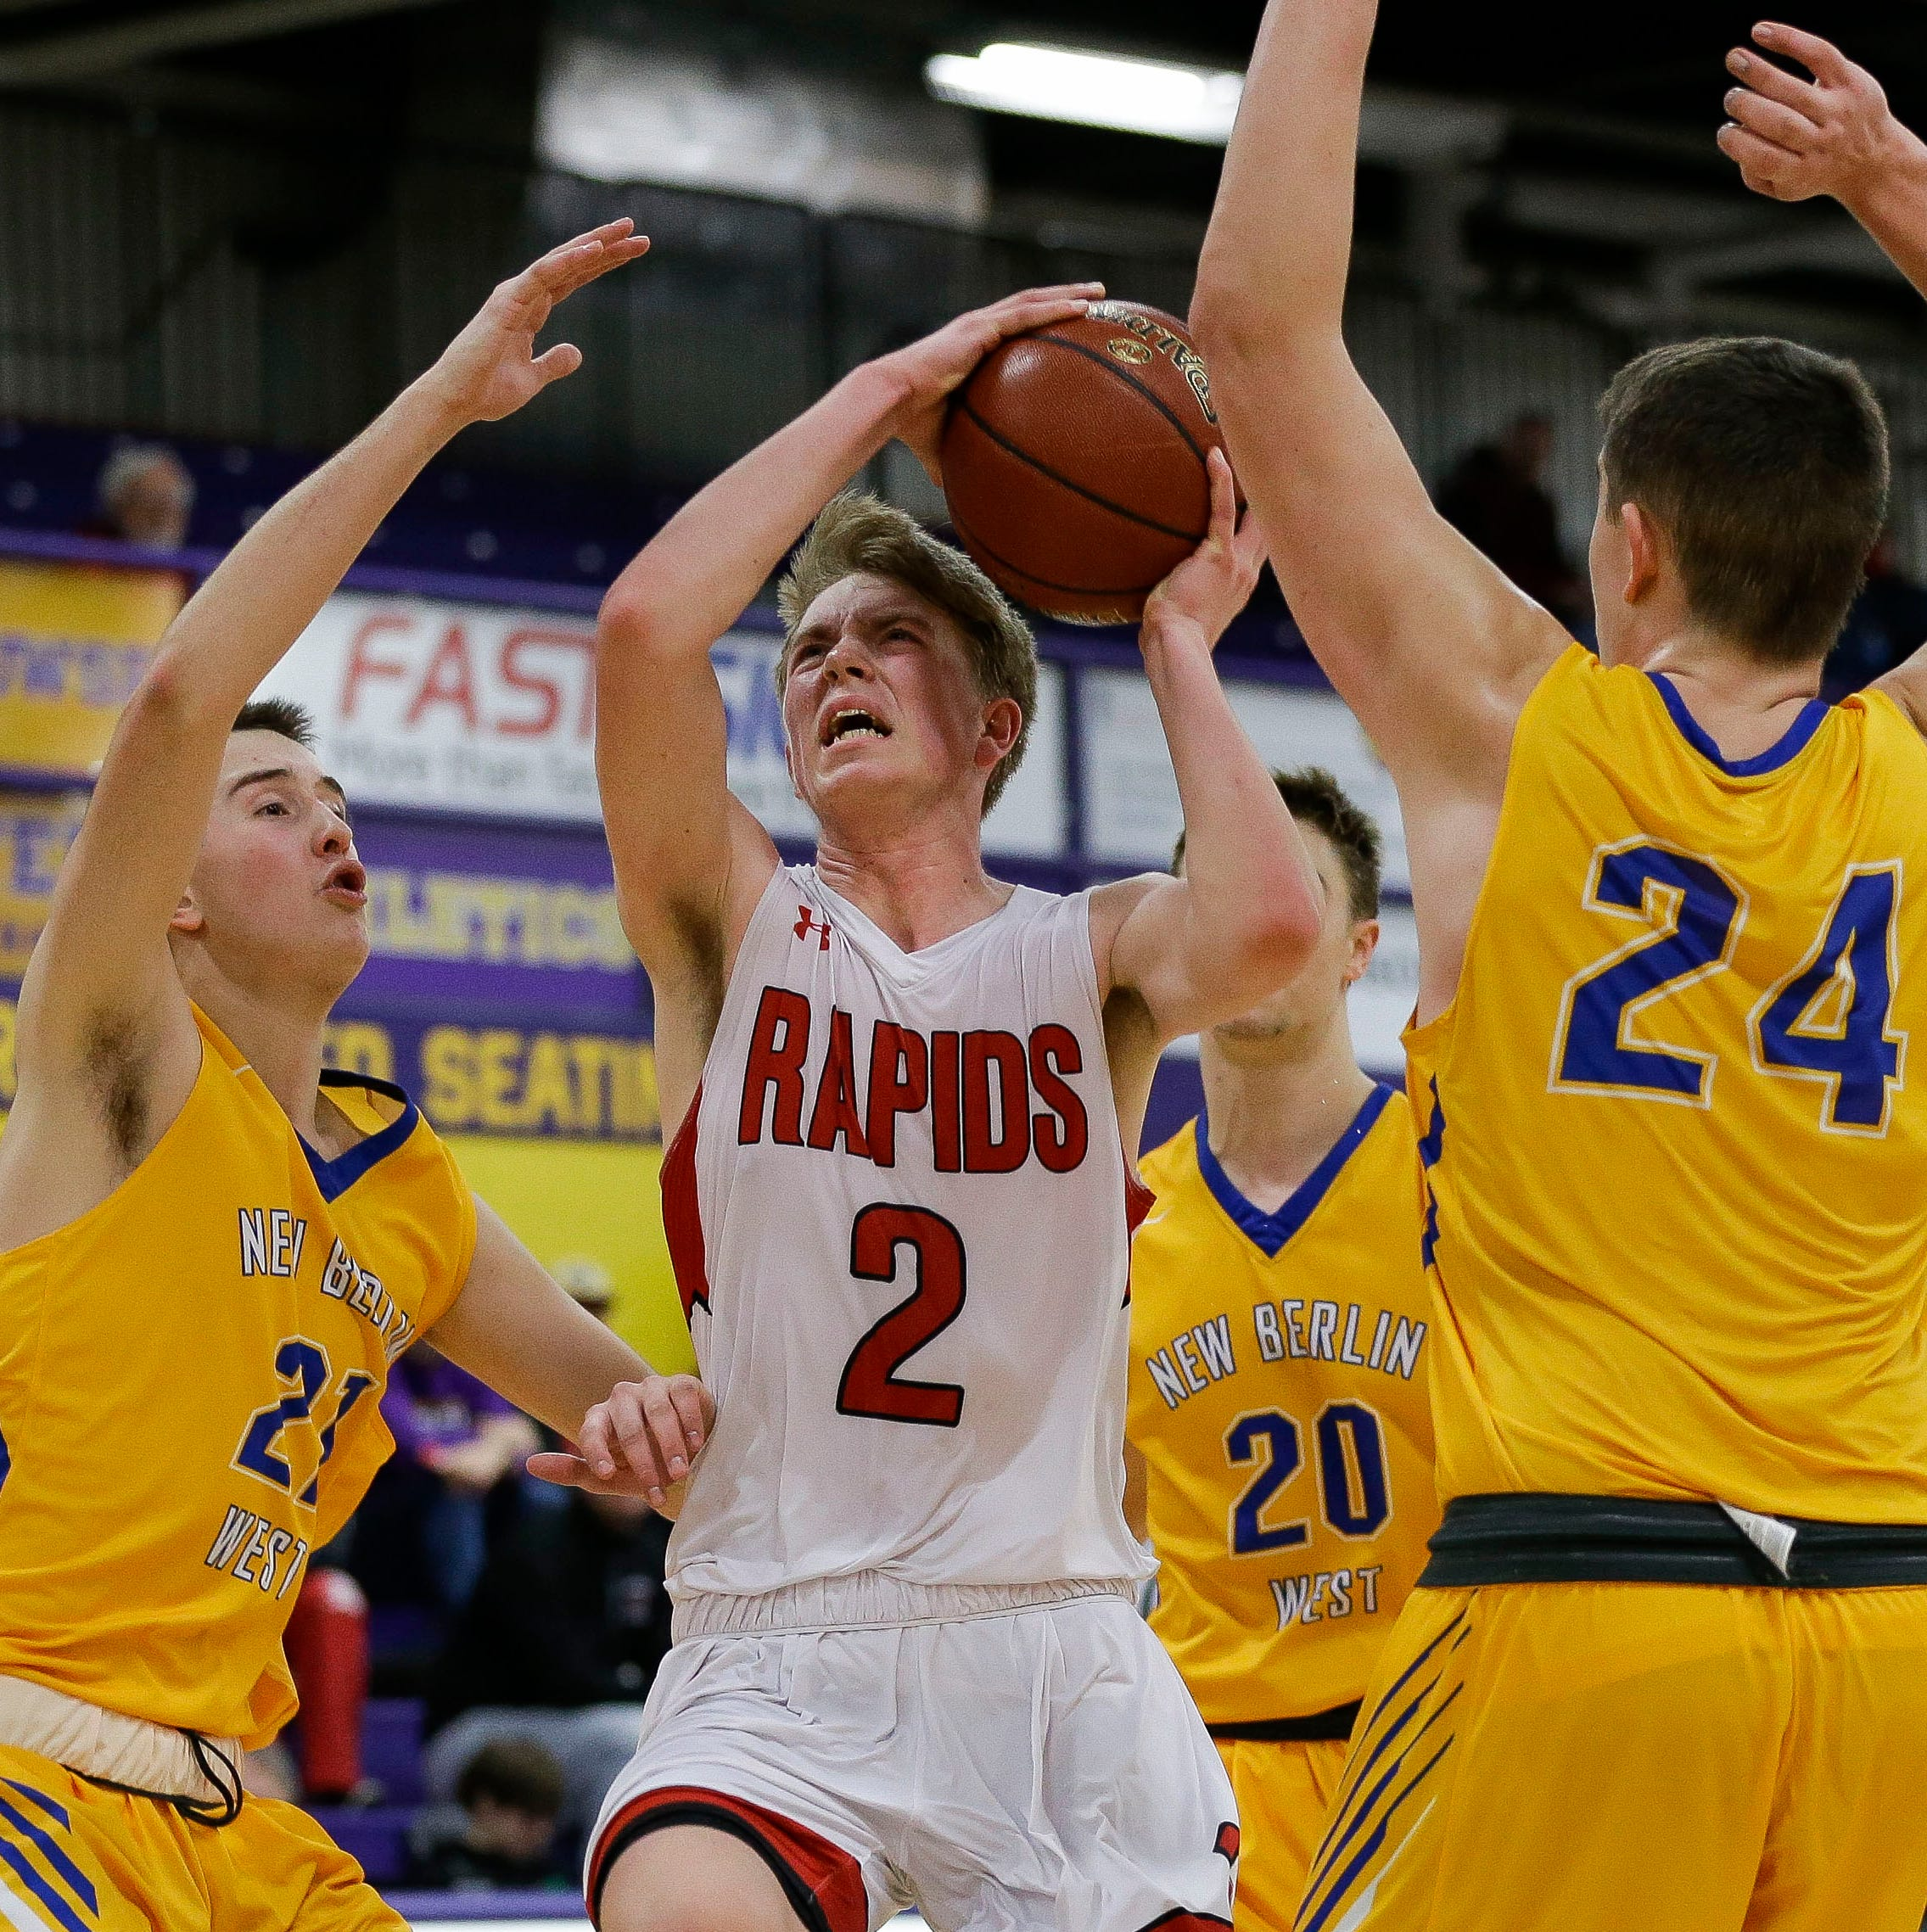 Boys basketball: Comeback bid falls short in Raiders loss to New Berlin West